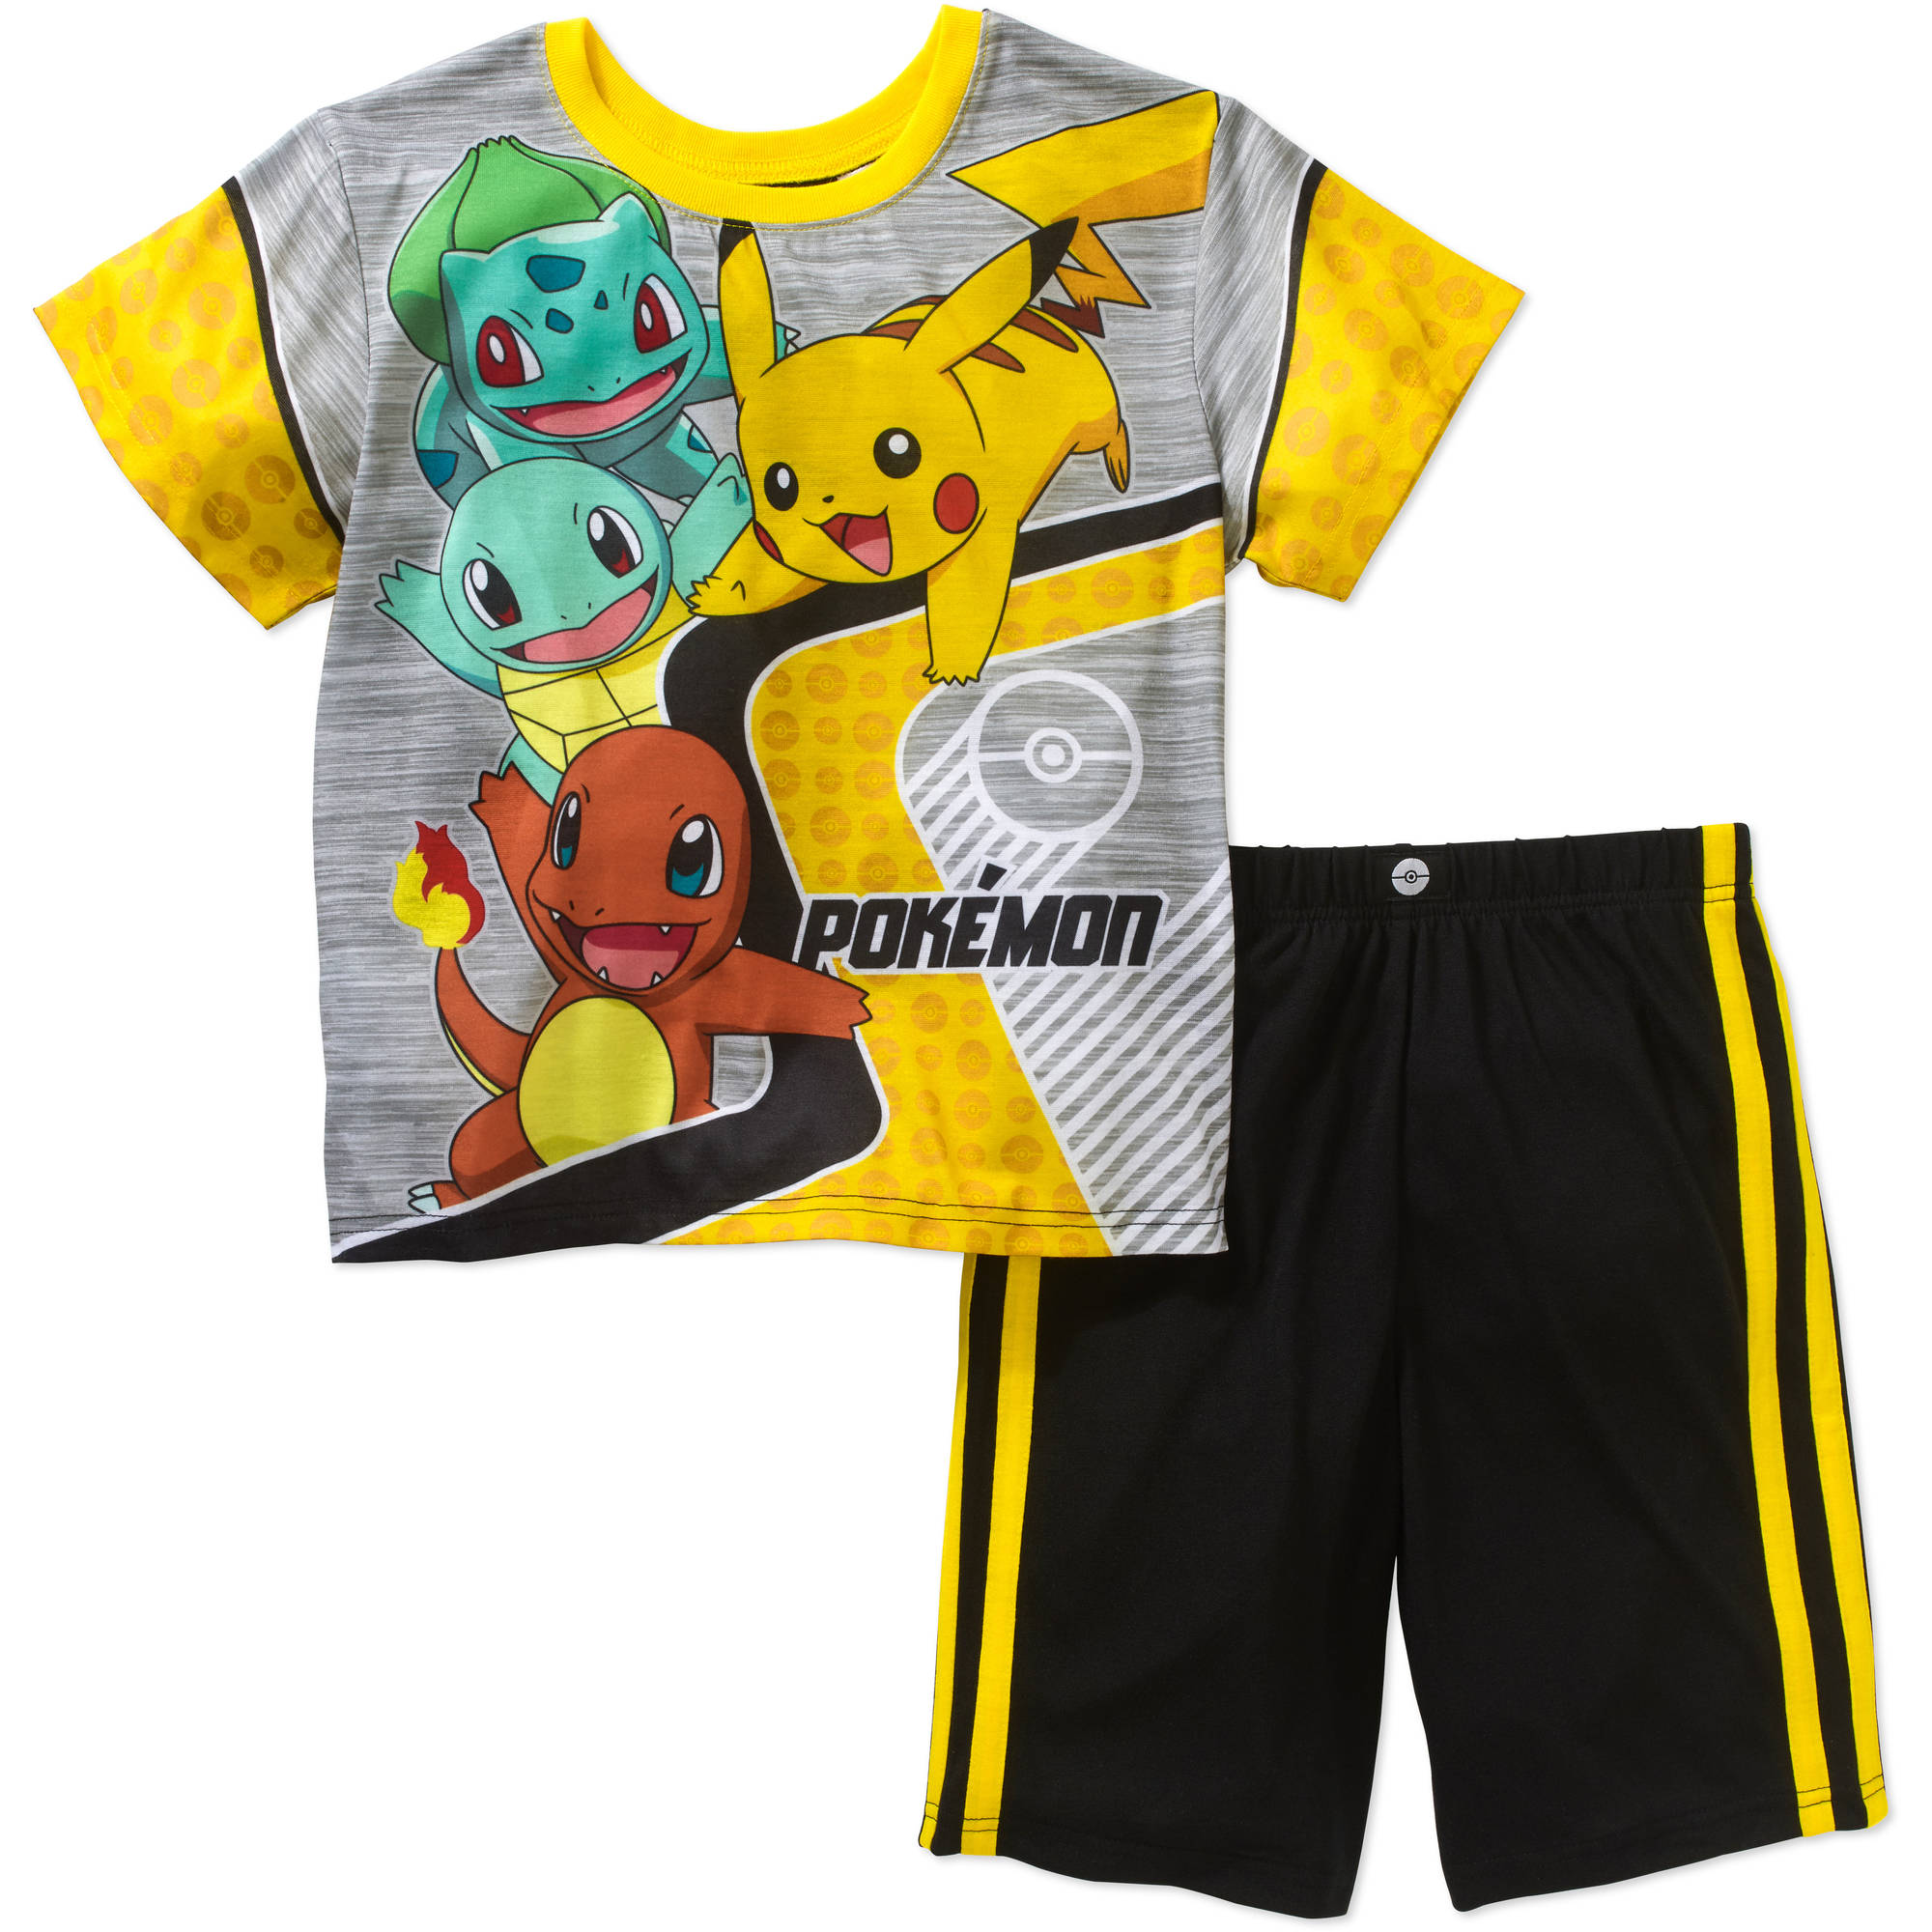 Boys Pajamas at Macy's come in all styles & colors. Buy boys footed, fleece, short pajamas & more at Macy's! Free shipping: Macy's Star Rewards Members! Macy's Presents: The Edit- A curated mix of fashion and inspiration Check It Out. Cotton Pajama Set, Little Boys & Big Boys.